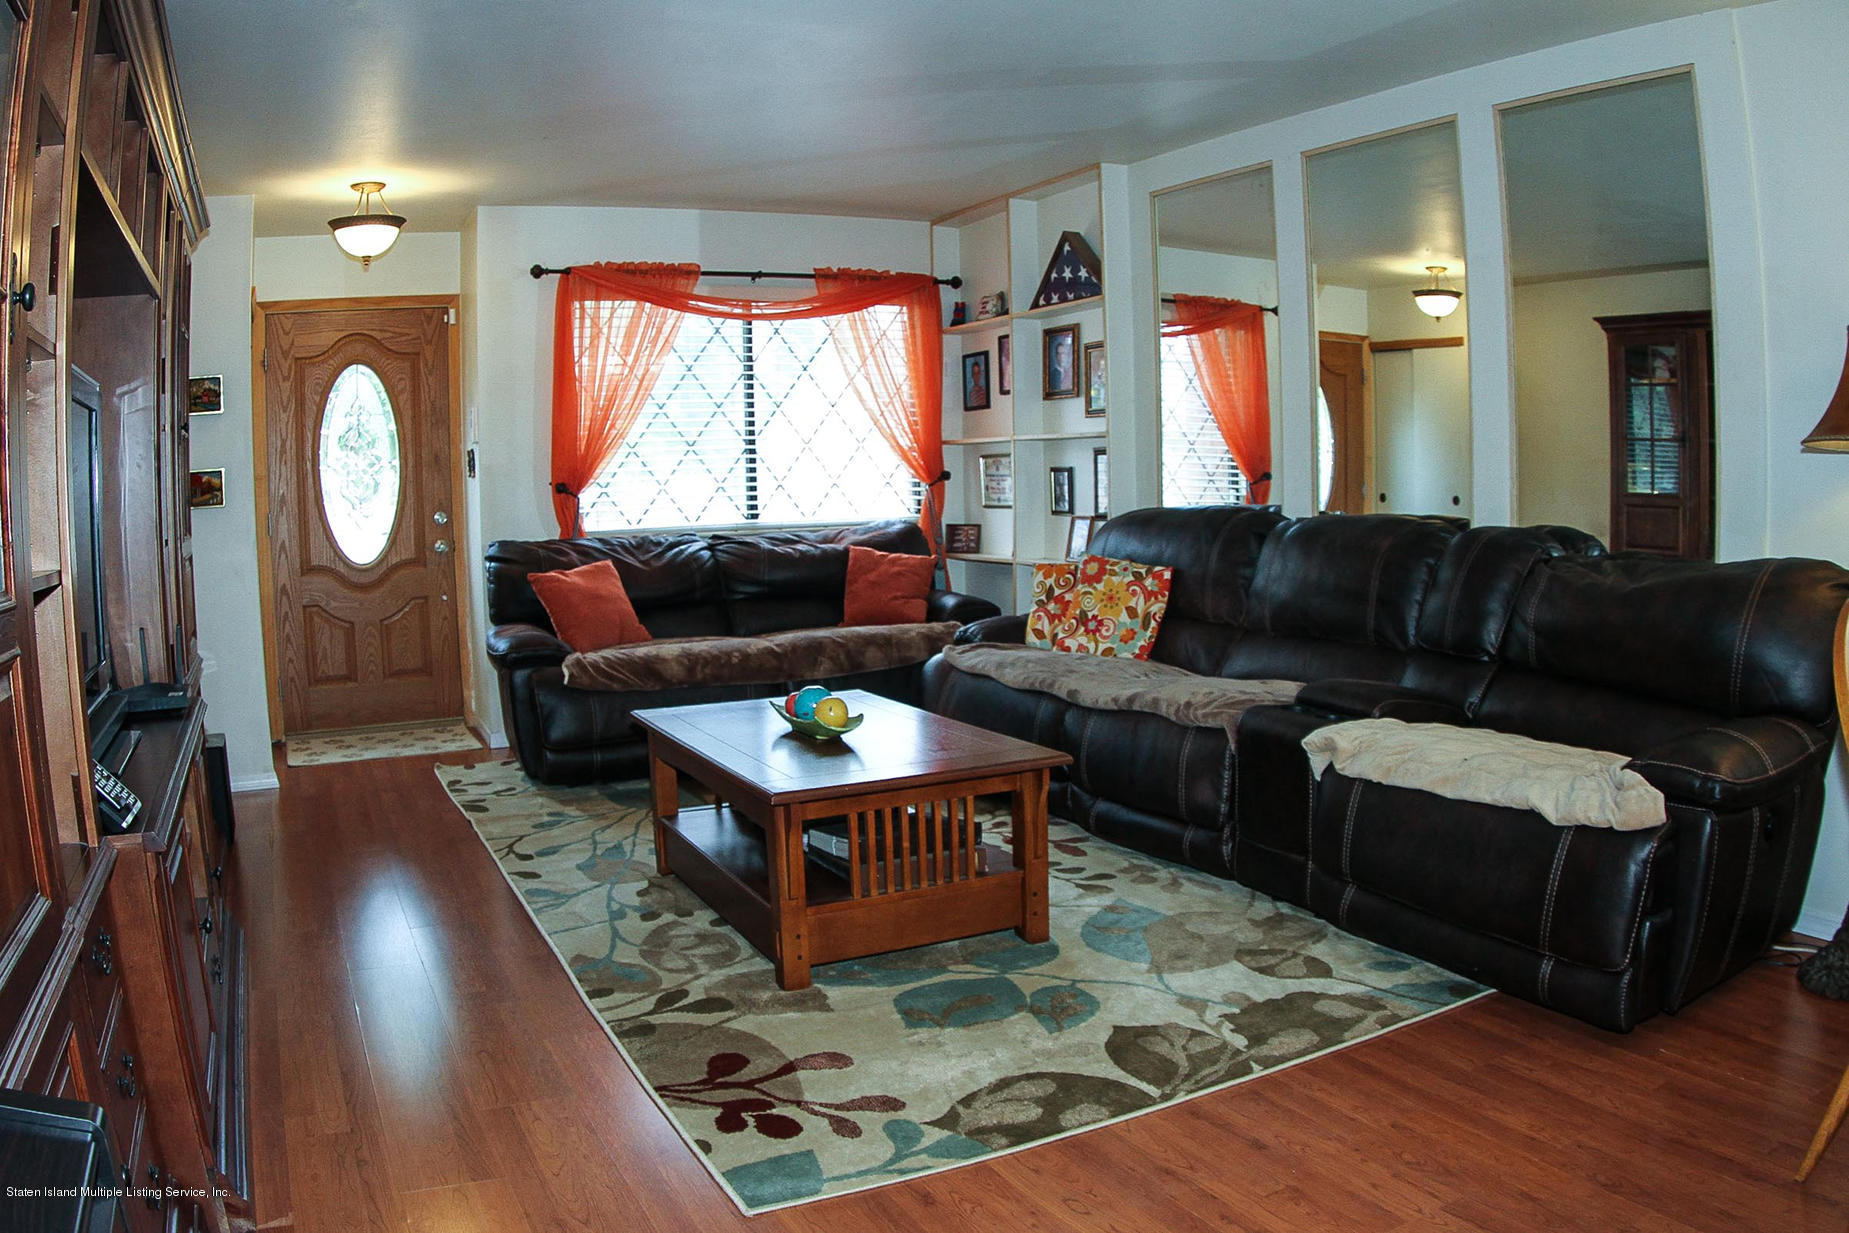 Single Family - Semi-Attached 972 Rensselaer Avenue  Staten Island, NY 10309, MLS-1134144-8